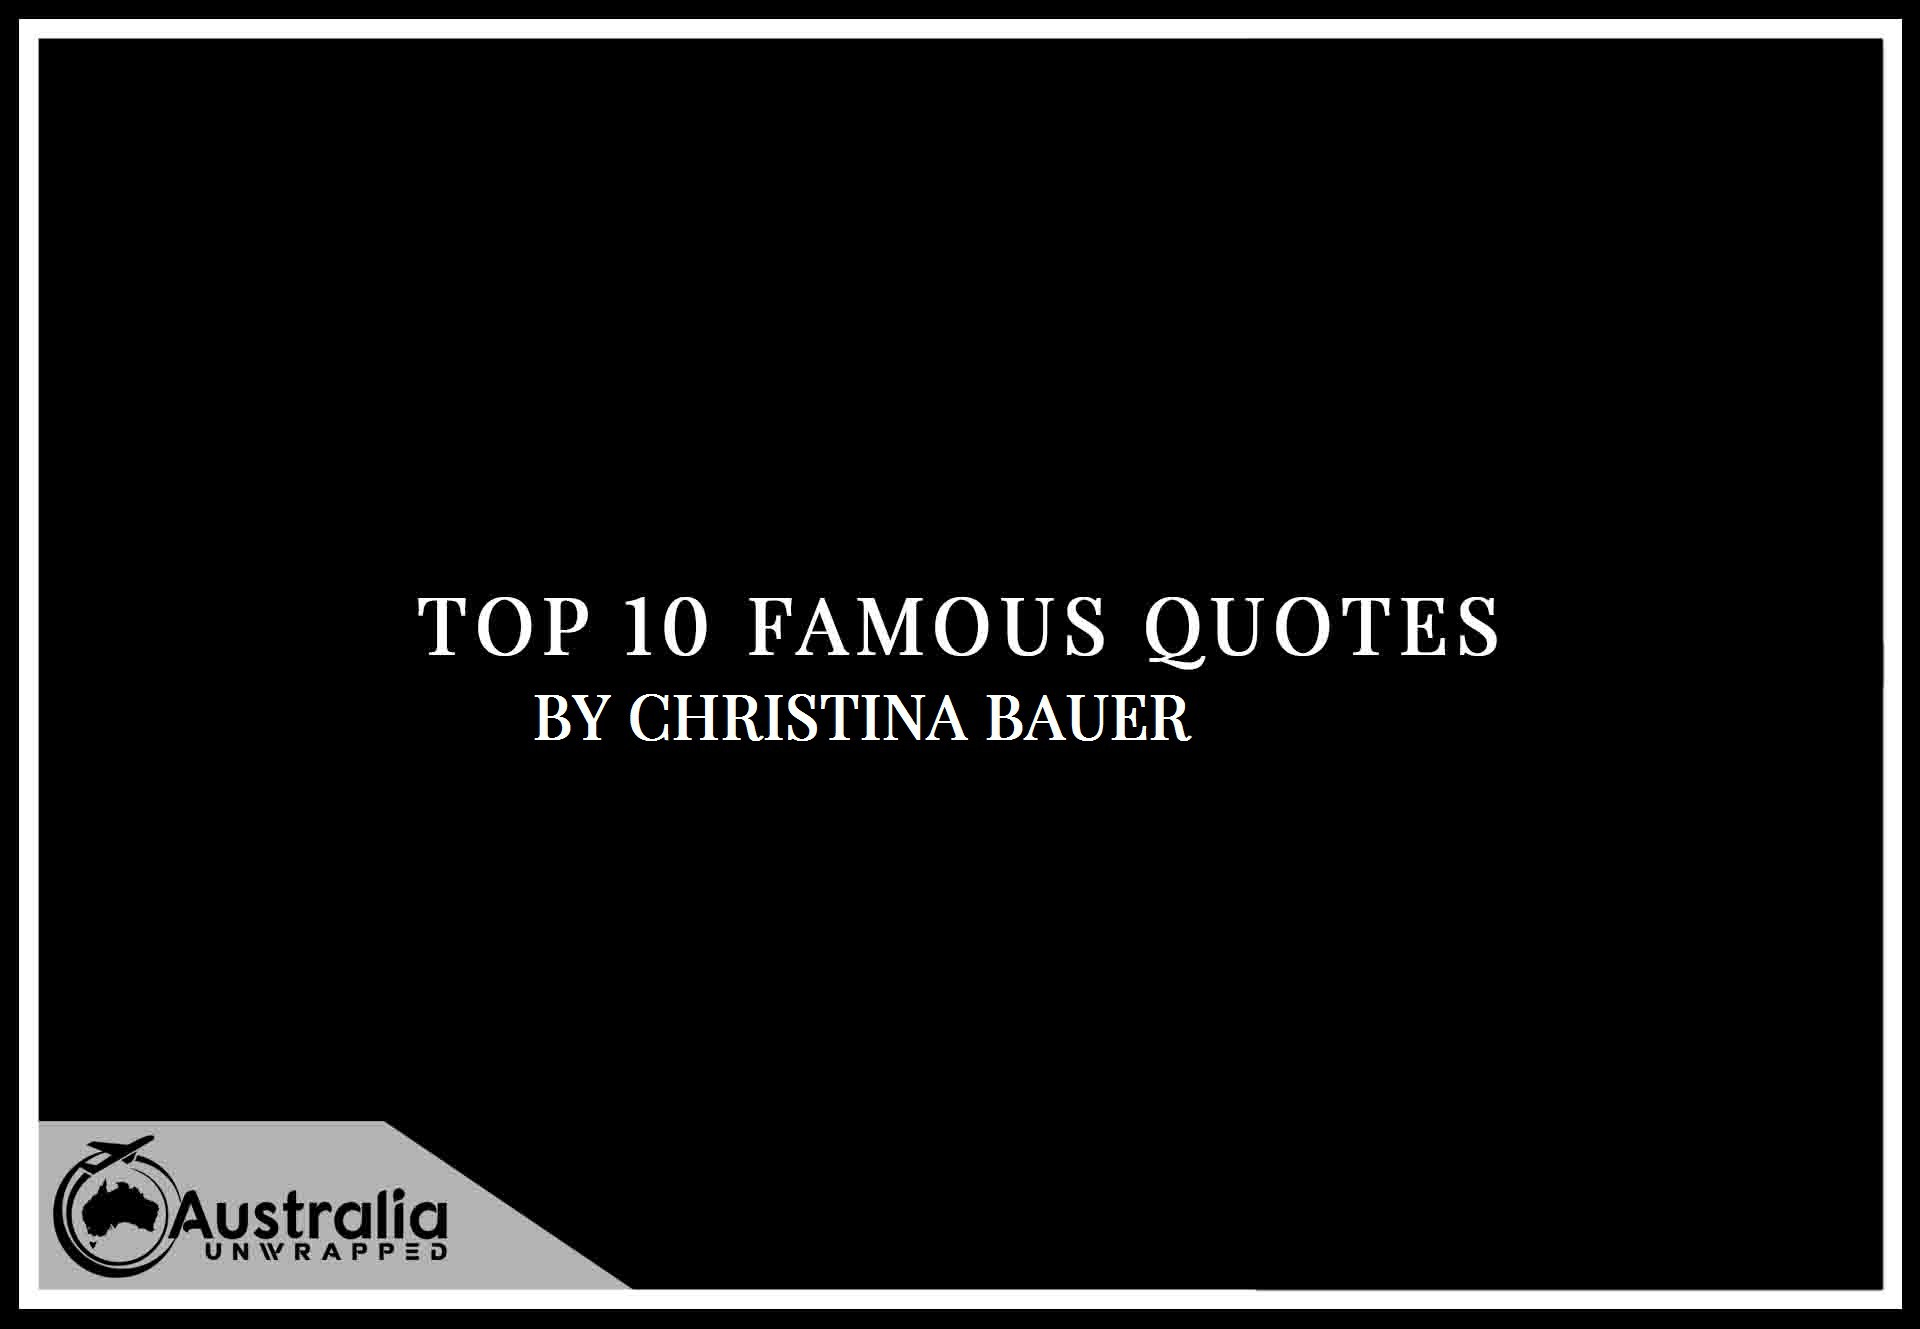 Christina Bauer's Top 10 Popular and Famous Quotes